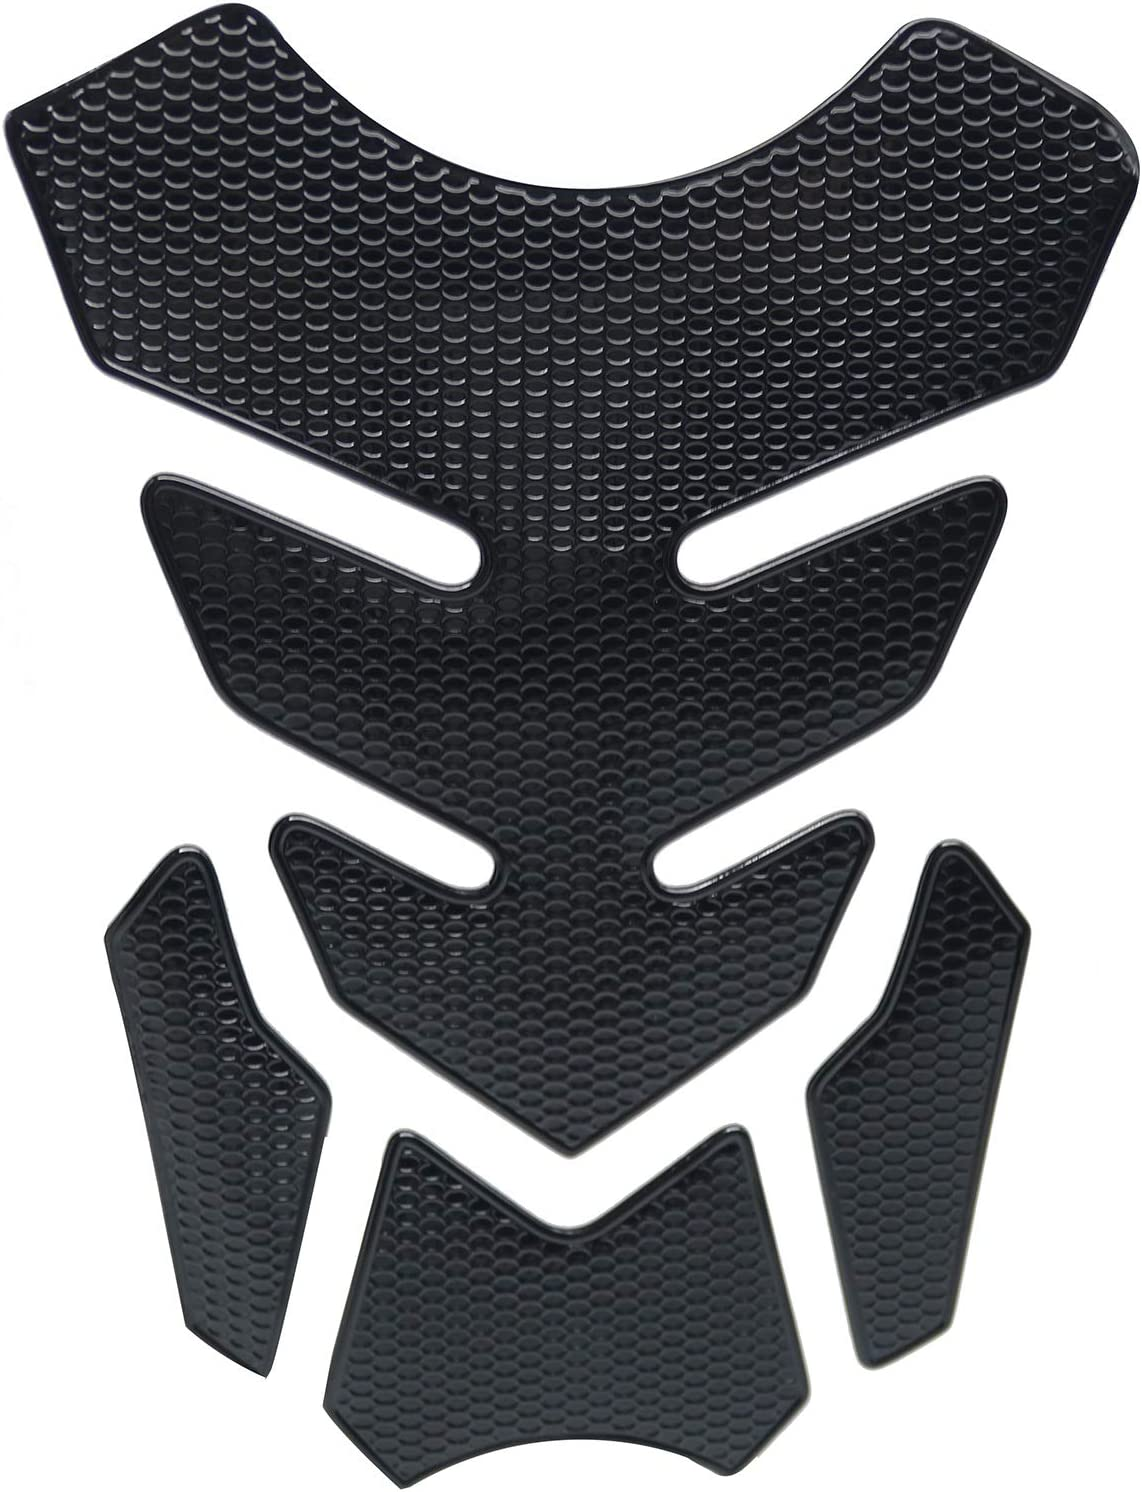 Black Powersports Max 88% OFF Gas Tank Protectors - Oil Courier shipping free Motorcycle F for